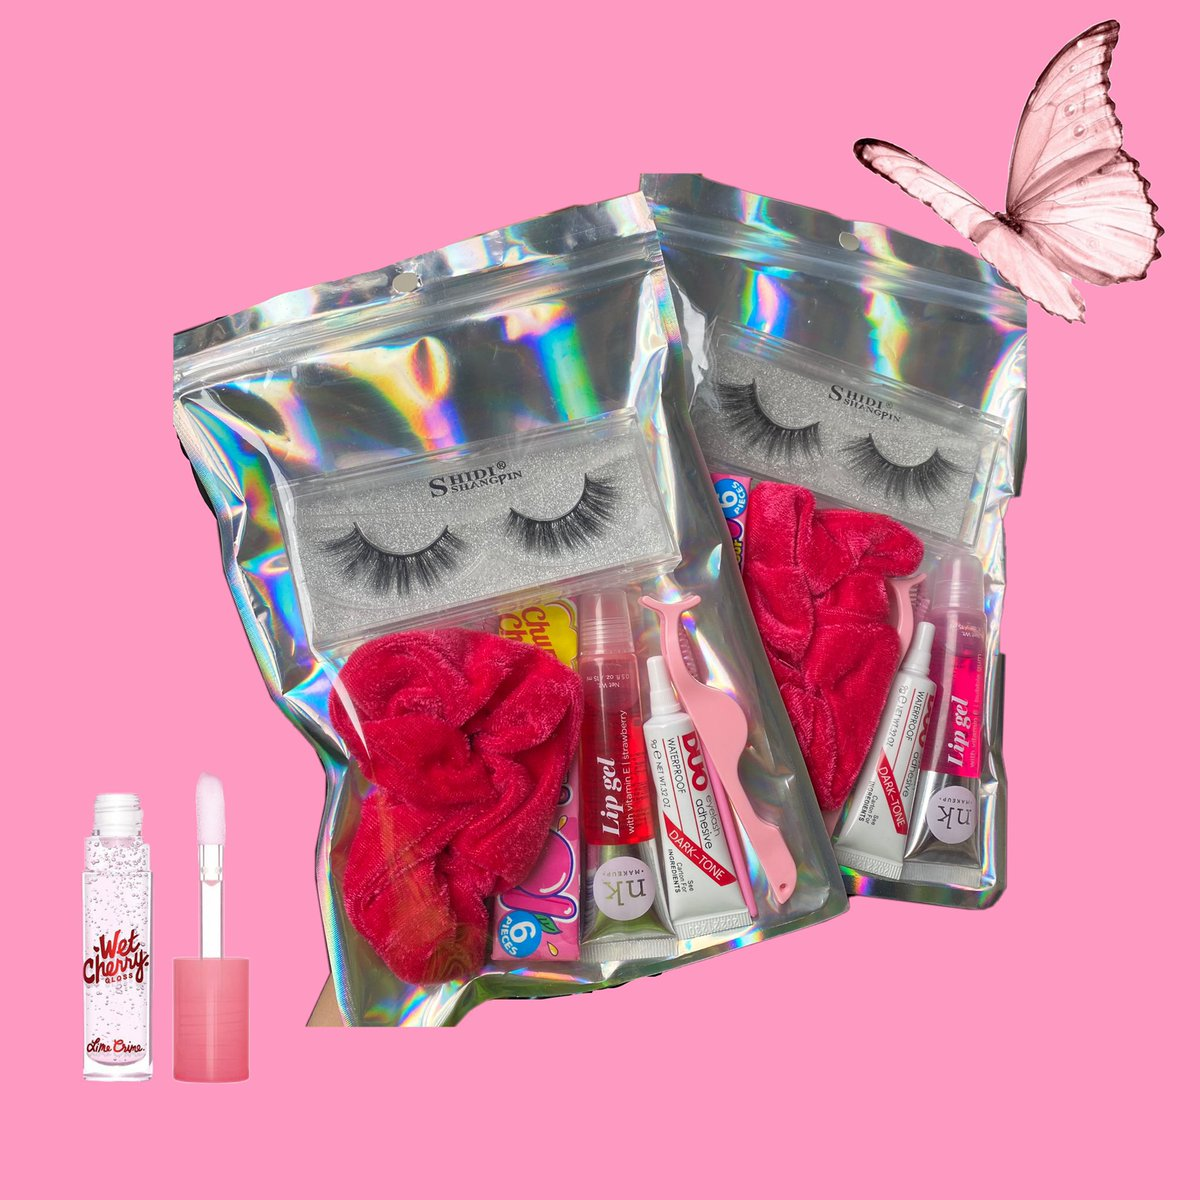 Ruby Kit !! 65MYR   contains : lashes, glue, applicator, eyebrow brushes, chewing gum, nicka k lipgloss   DM to order  <br>http://pic.twitter.com/fhyzTftluC